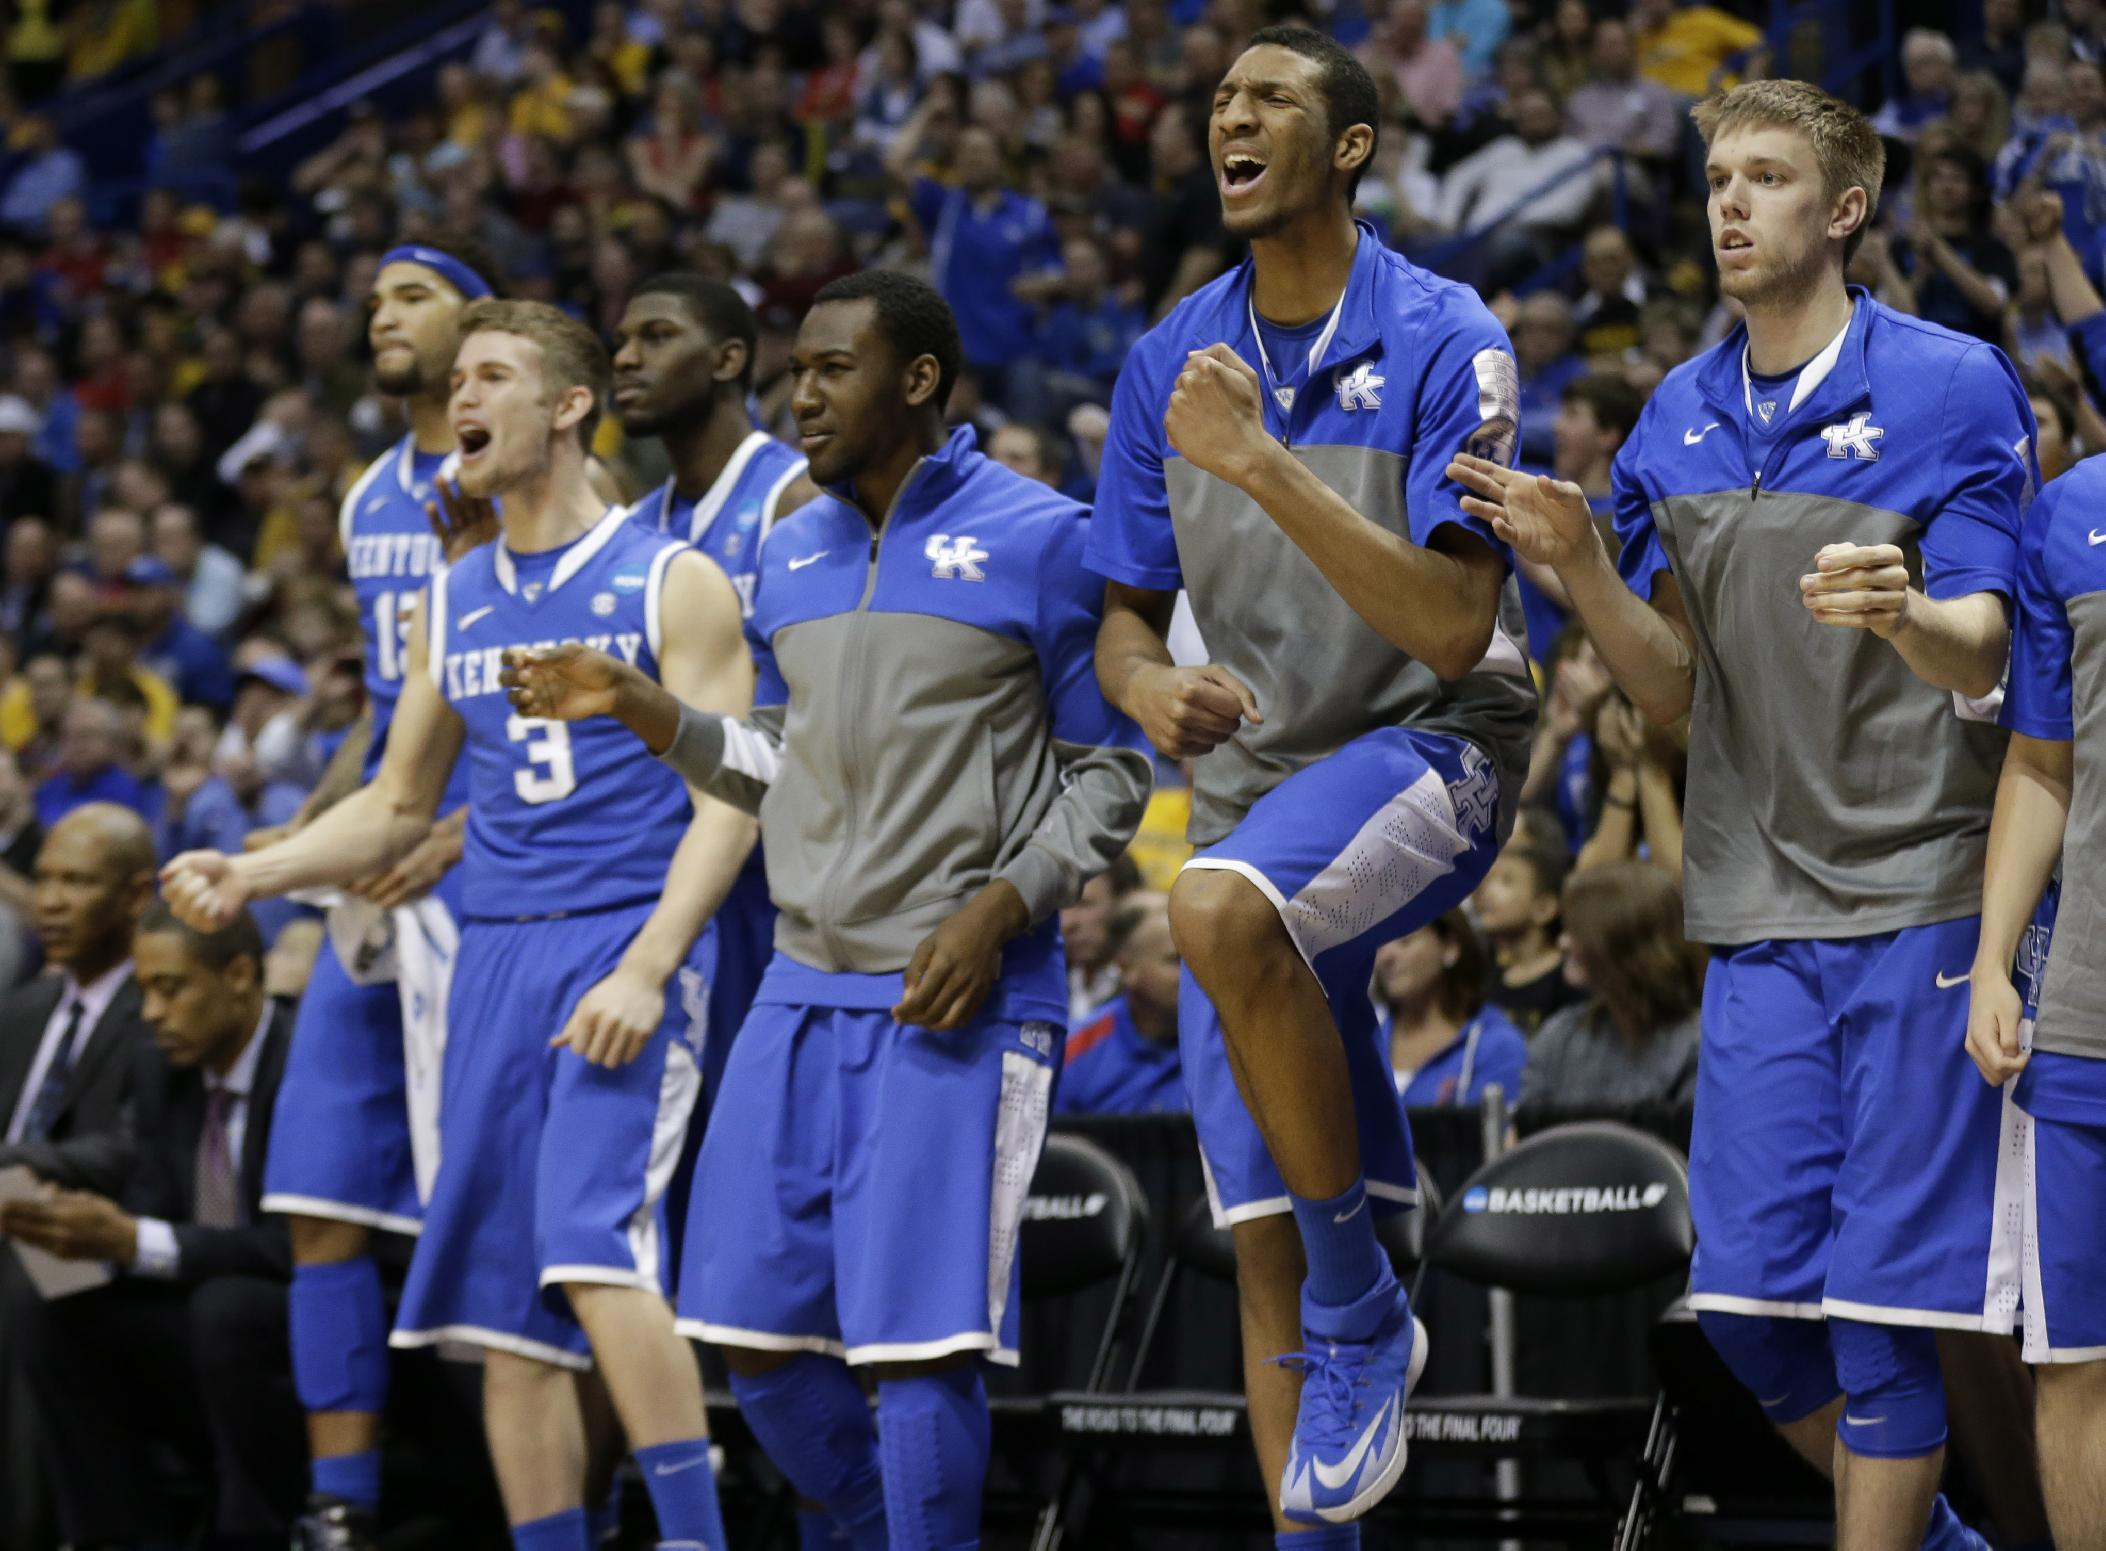 The Undefeated Kentucky Wildcats: Kentucky Ends Wichita State's Undefeated Season In 78-76